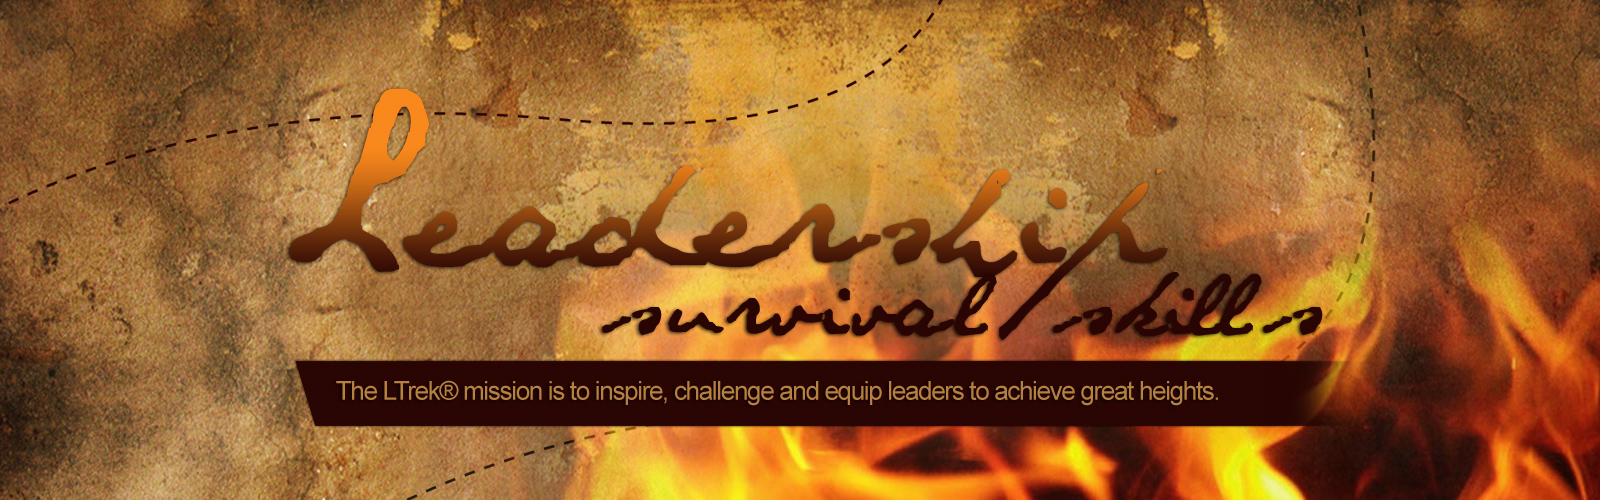 leadershipsurvival